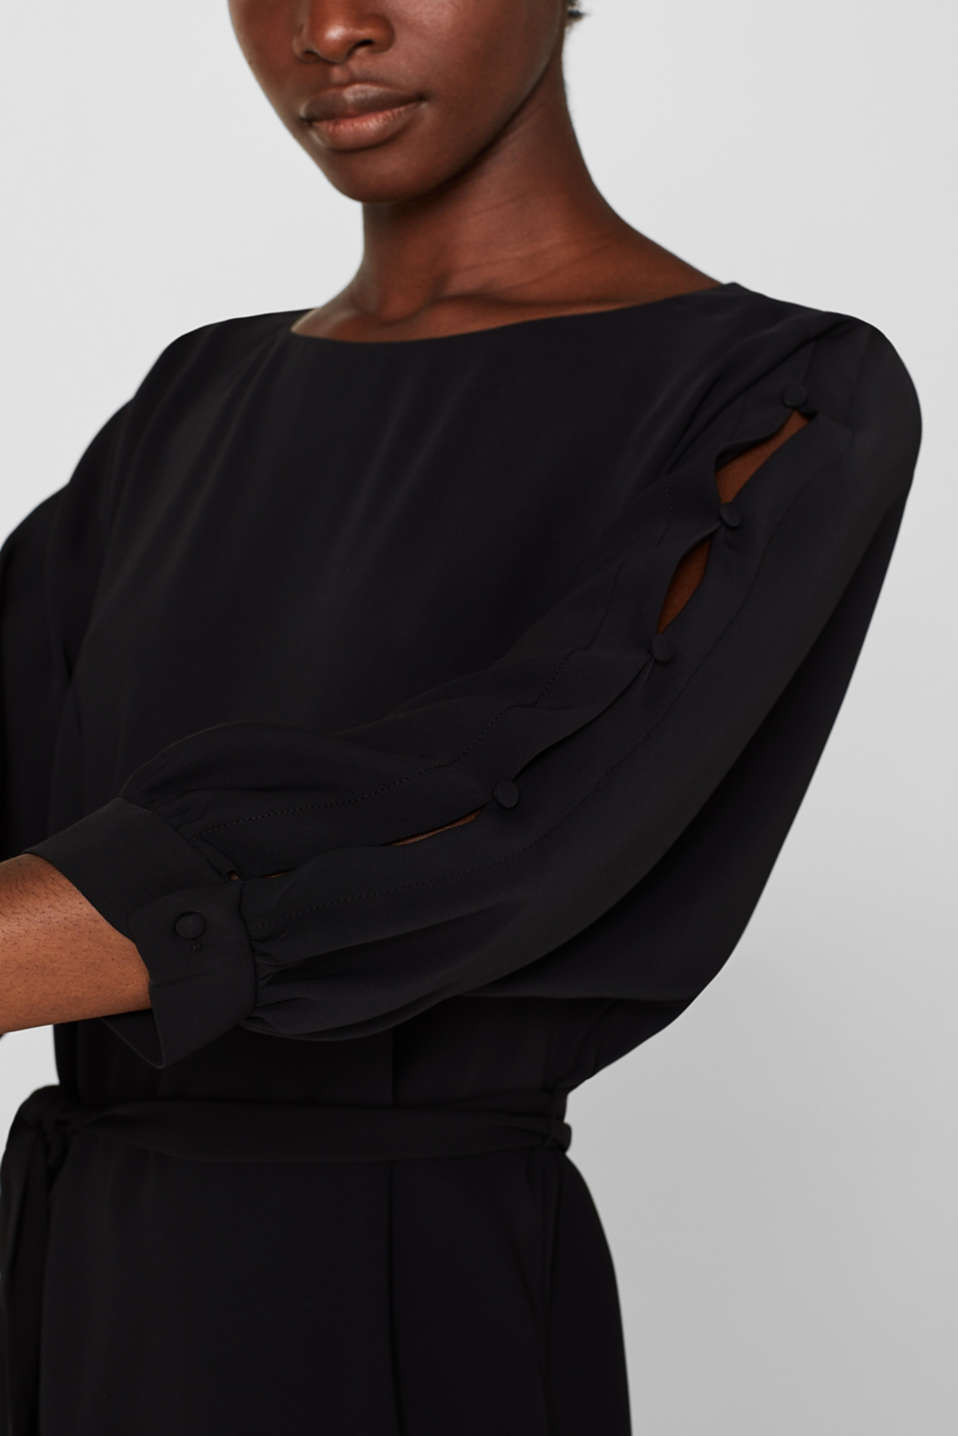 Woven dress with batwing sleeves and a tie-around belt, BLACK, detail image number 3